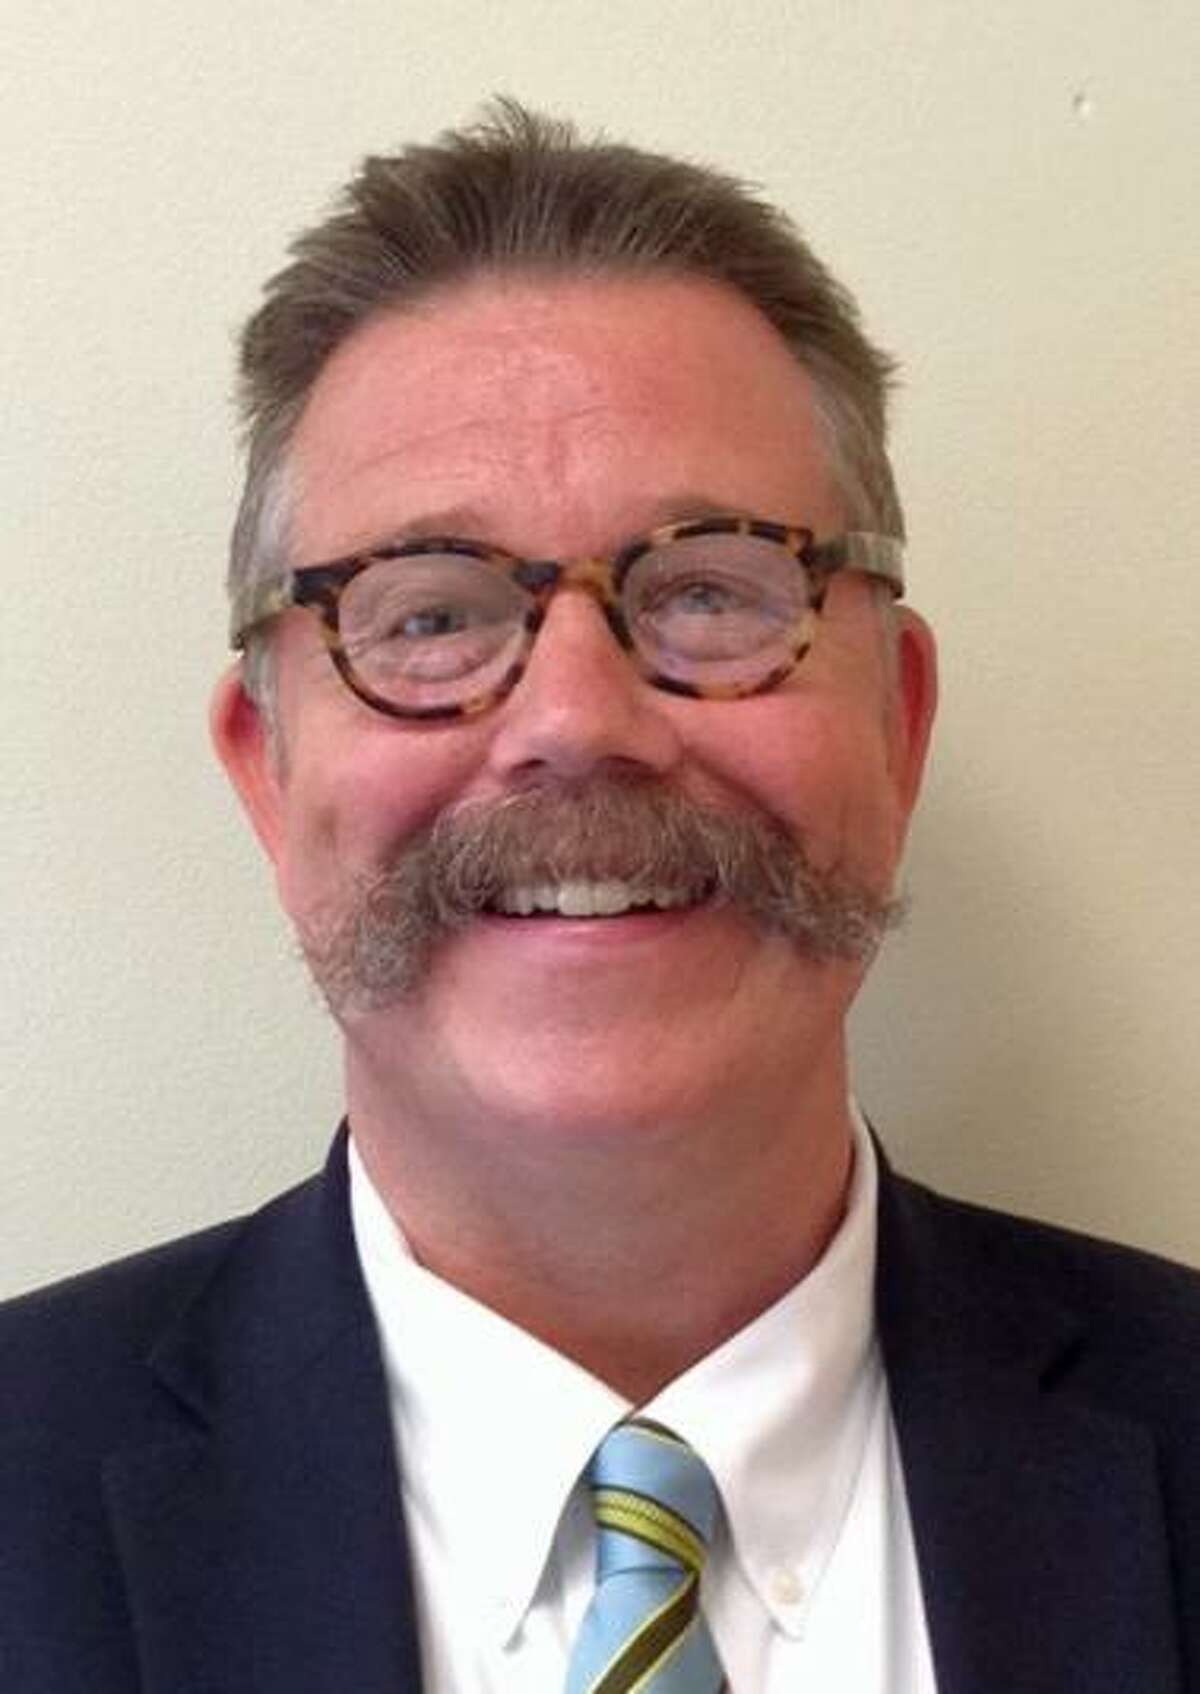 Jeffrey Libby will the new assistant principal of Parkway School, effective July 1.